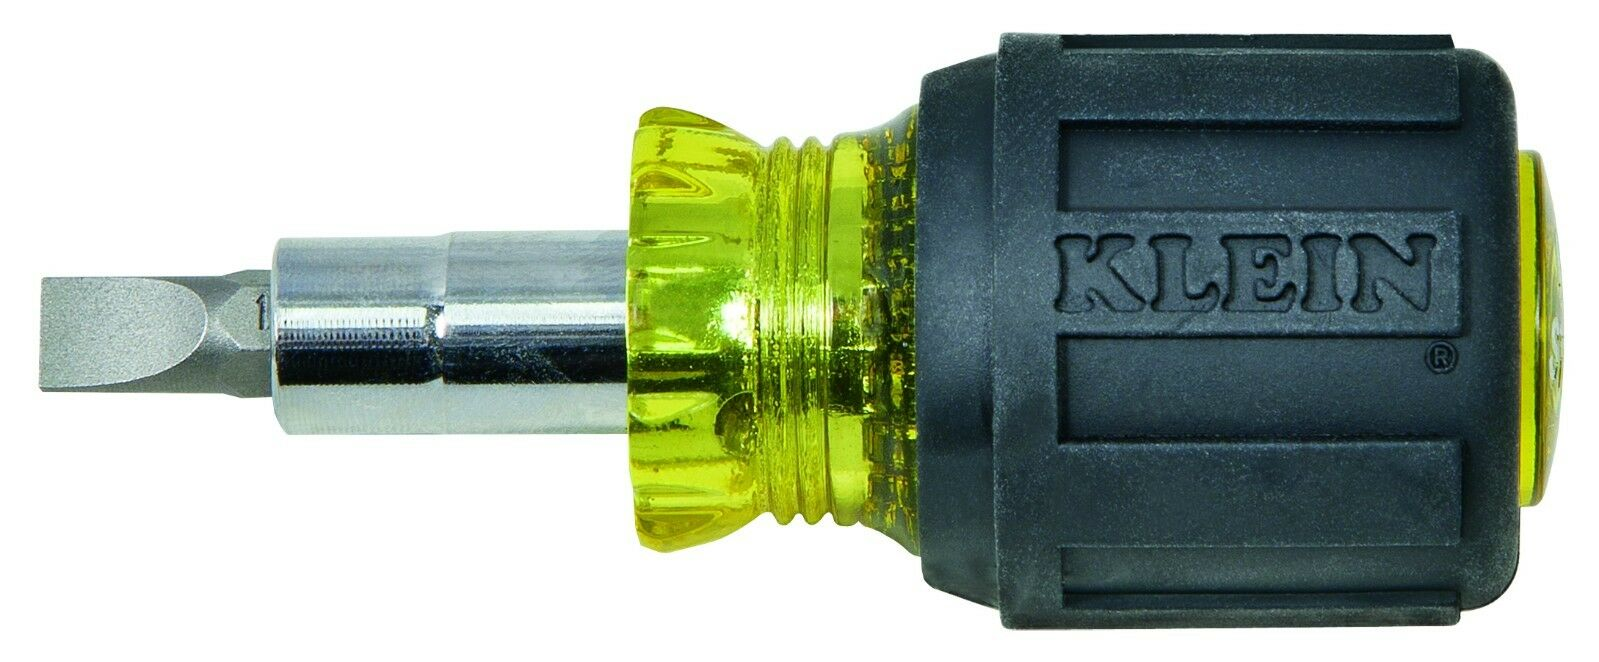 Klein Tools Stubby Multi-Bit Screwdriver/Nut Driver - 3.2 Le